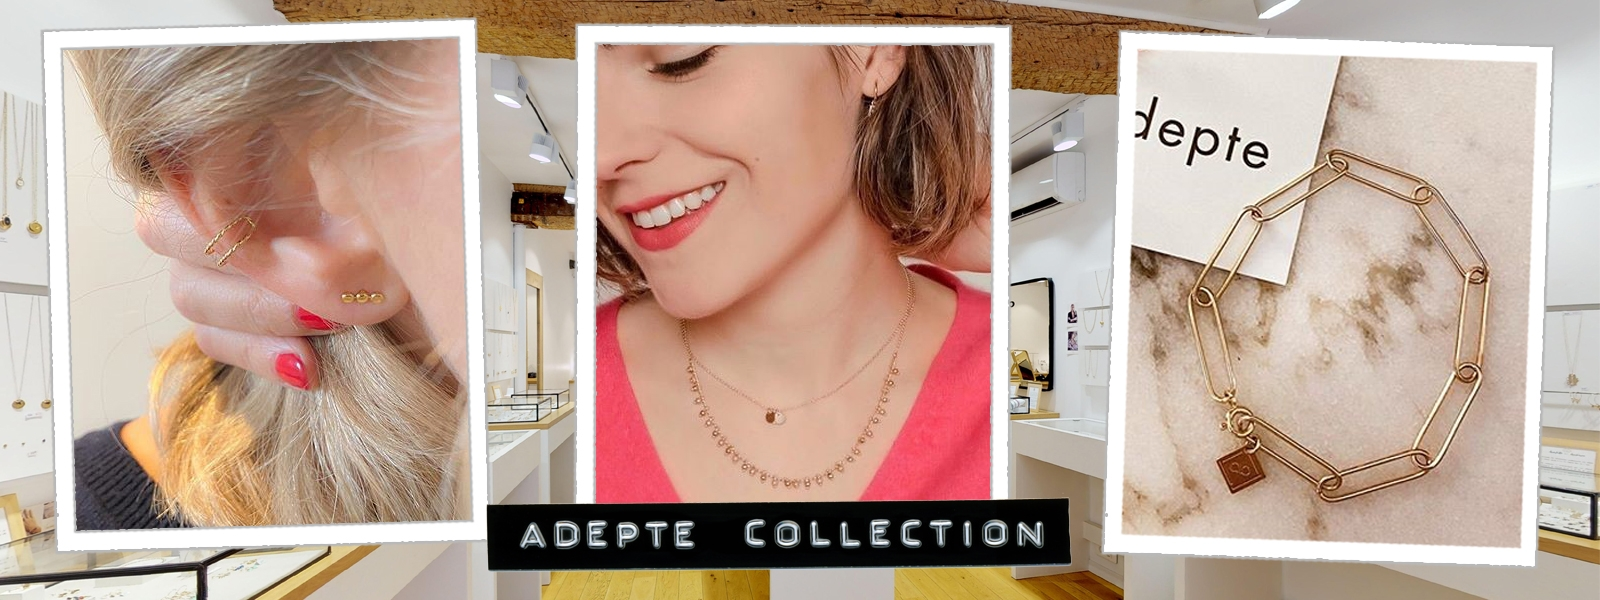 adepte collection